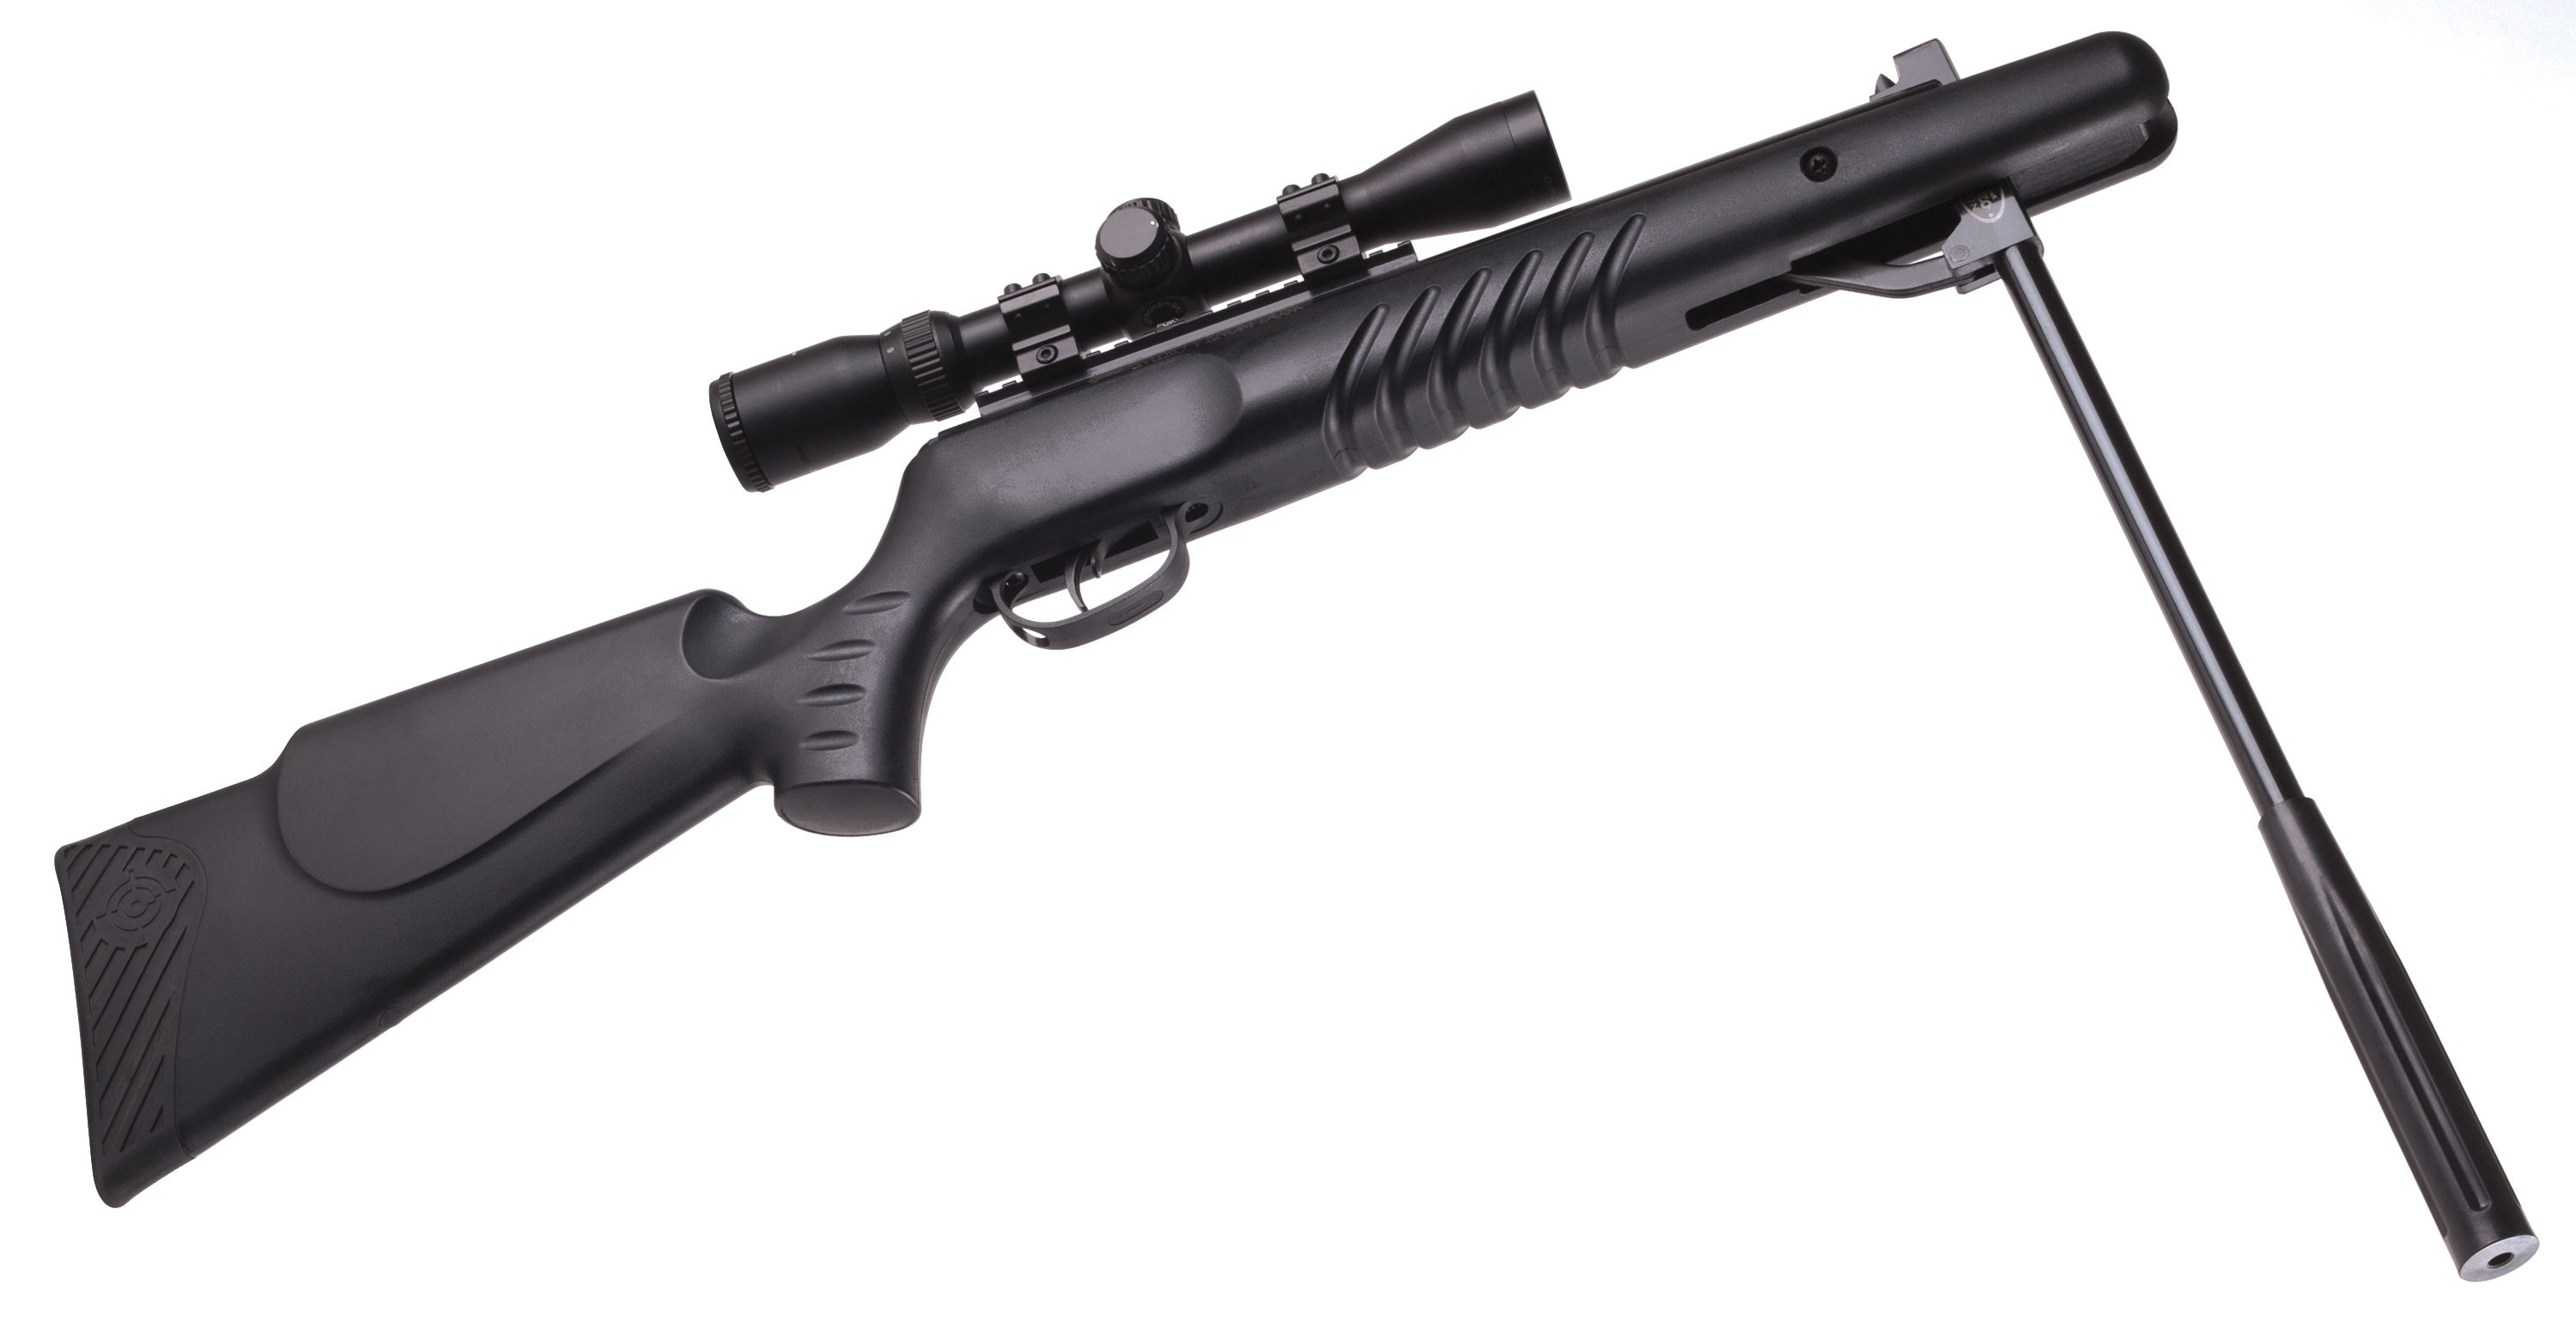 Honest Crosman Nitro Venom 22 Review Air Gun Maniac